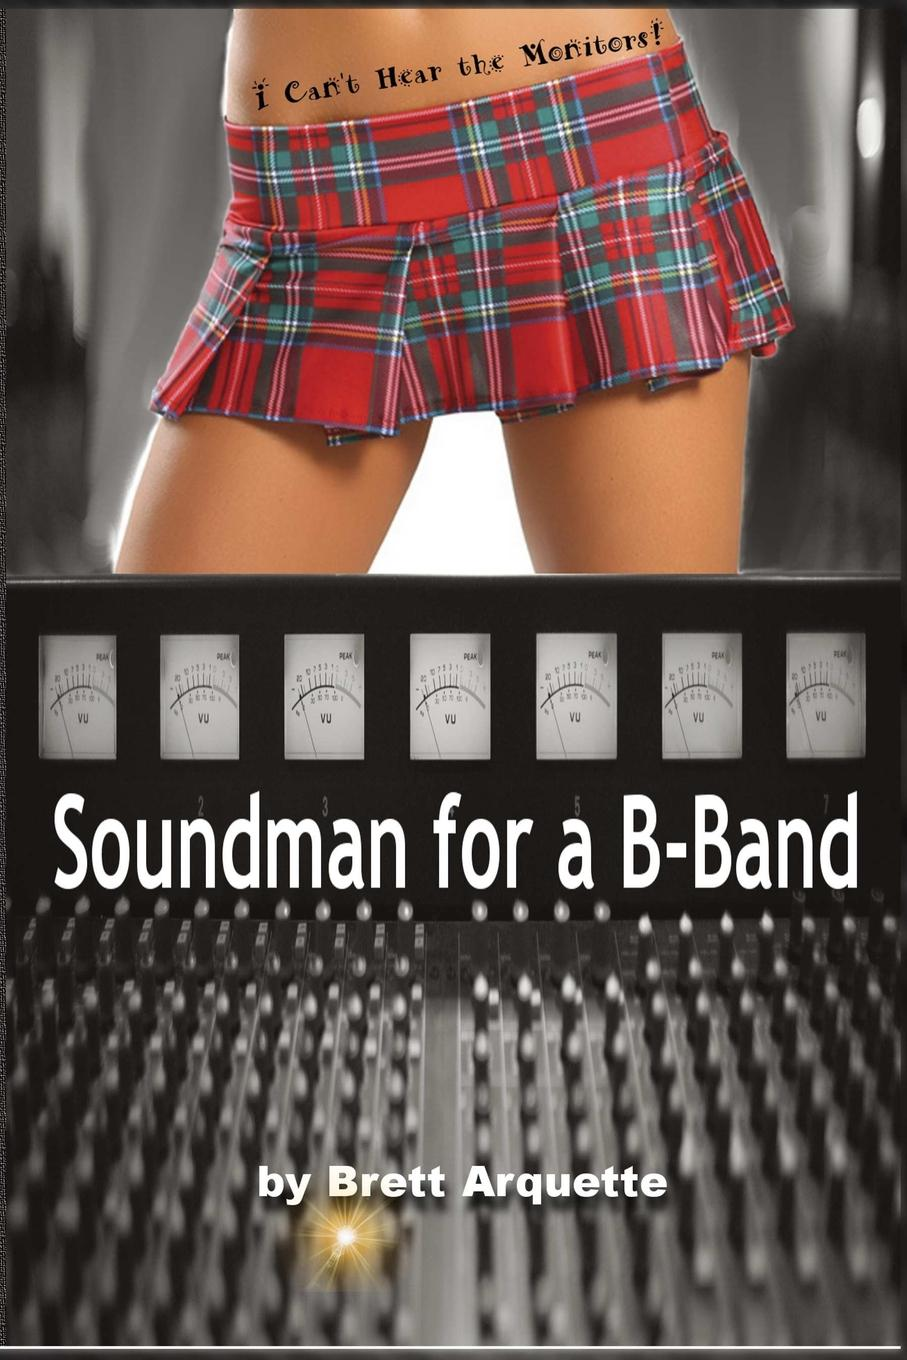 Brett Arquette Soundman for a B-Band to the new girl sound advice for my former husband s wife or mistress